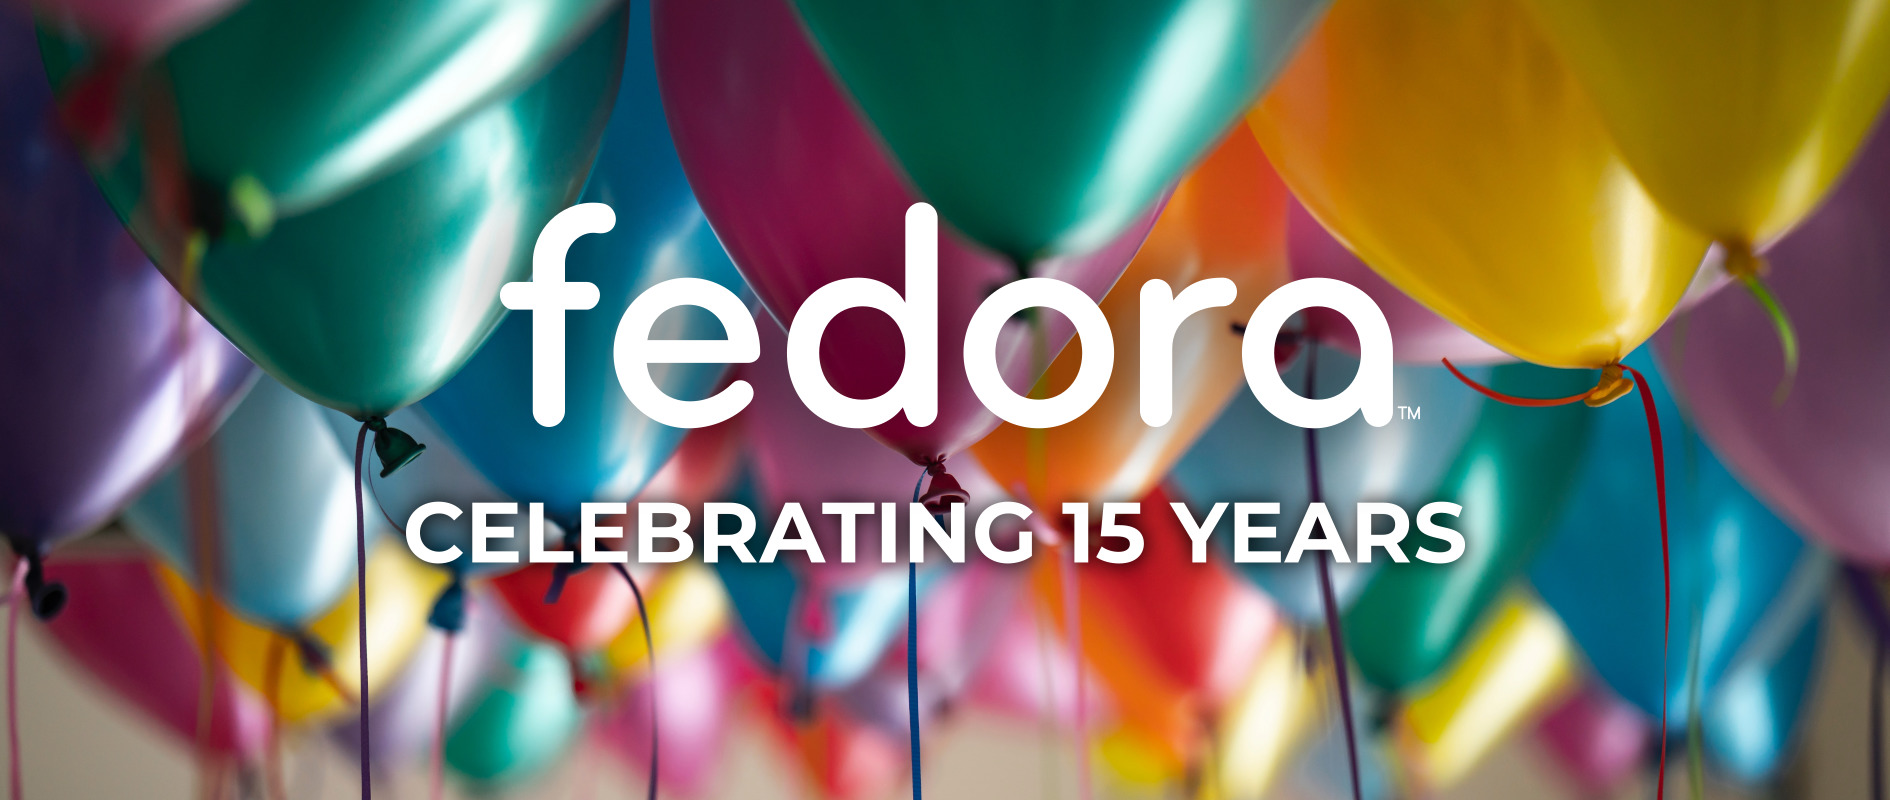 Les Filles Zen Celebrate Fifteen Years Of Fedora Fedora Magazine